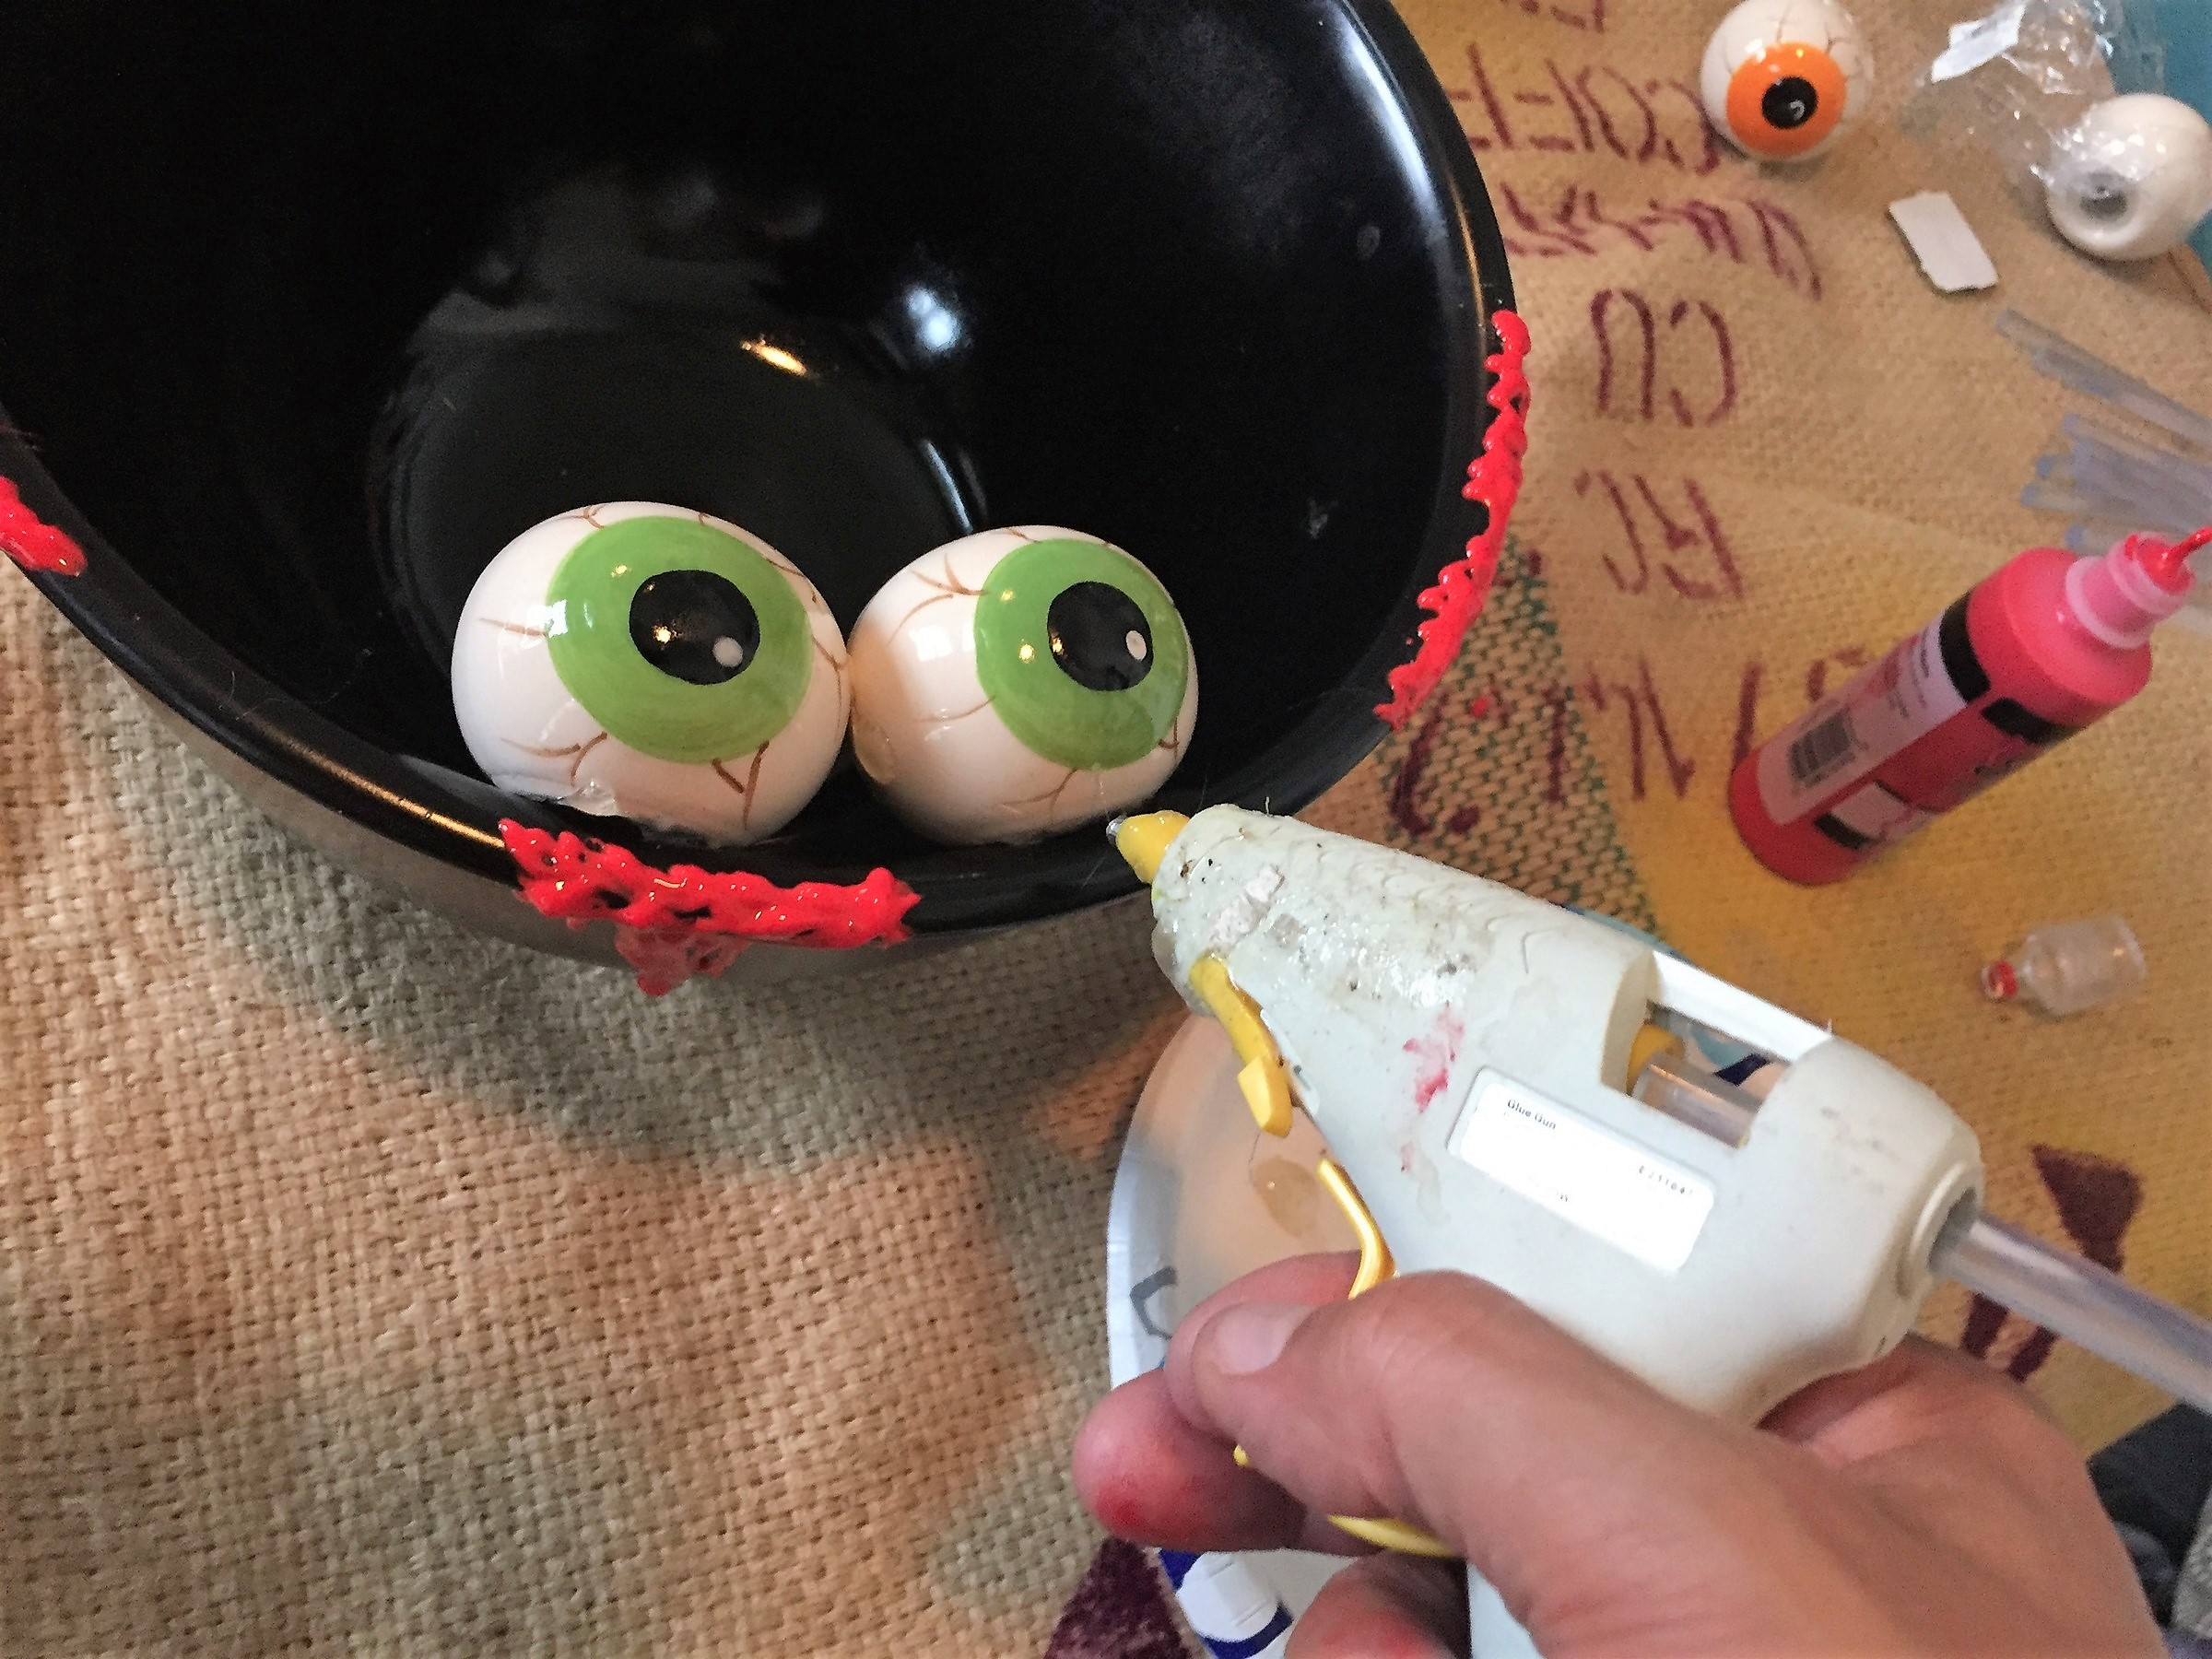 Tim secures spooky eyeballs to painted bowl with hot glue gun.